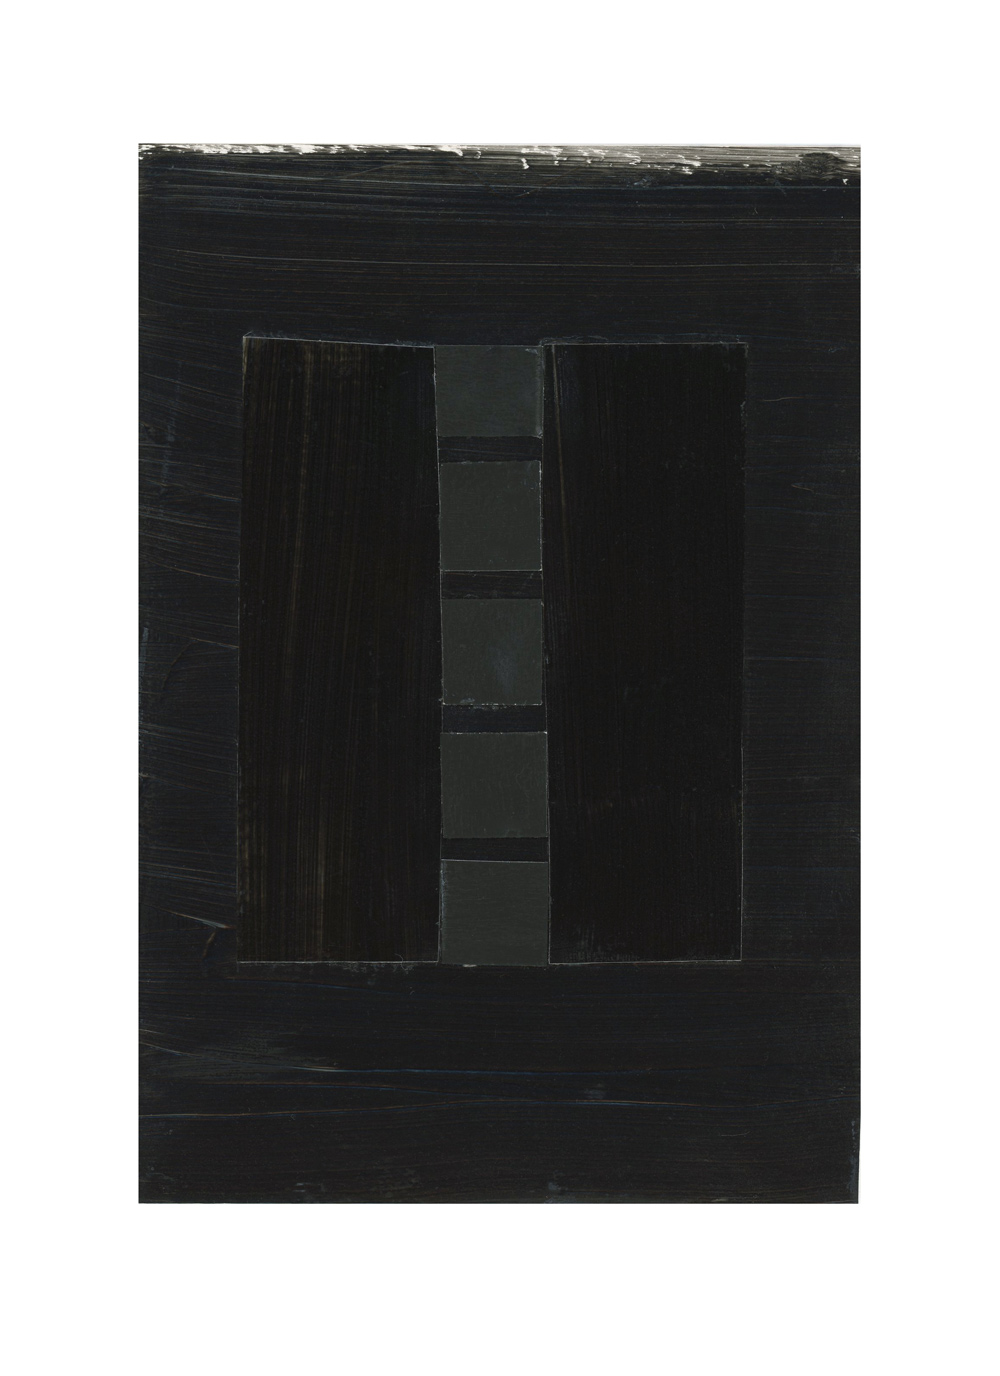 inspired by pierre soulages, no. 5